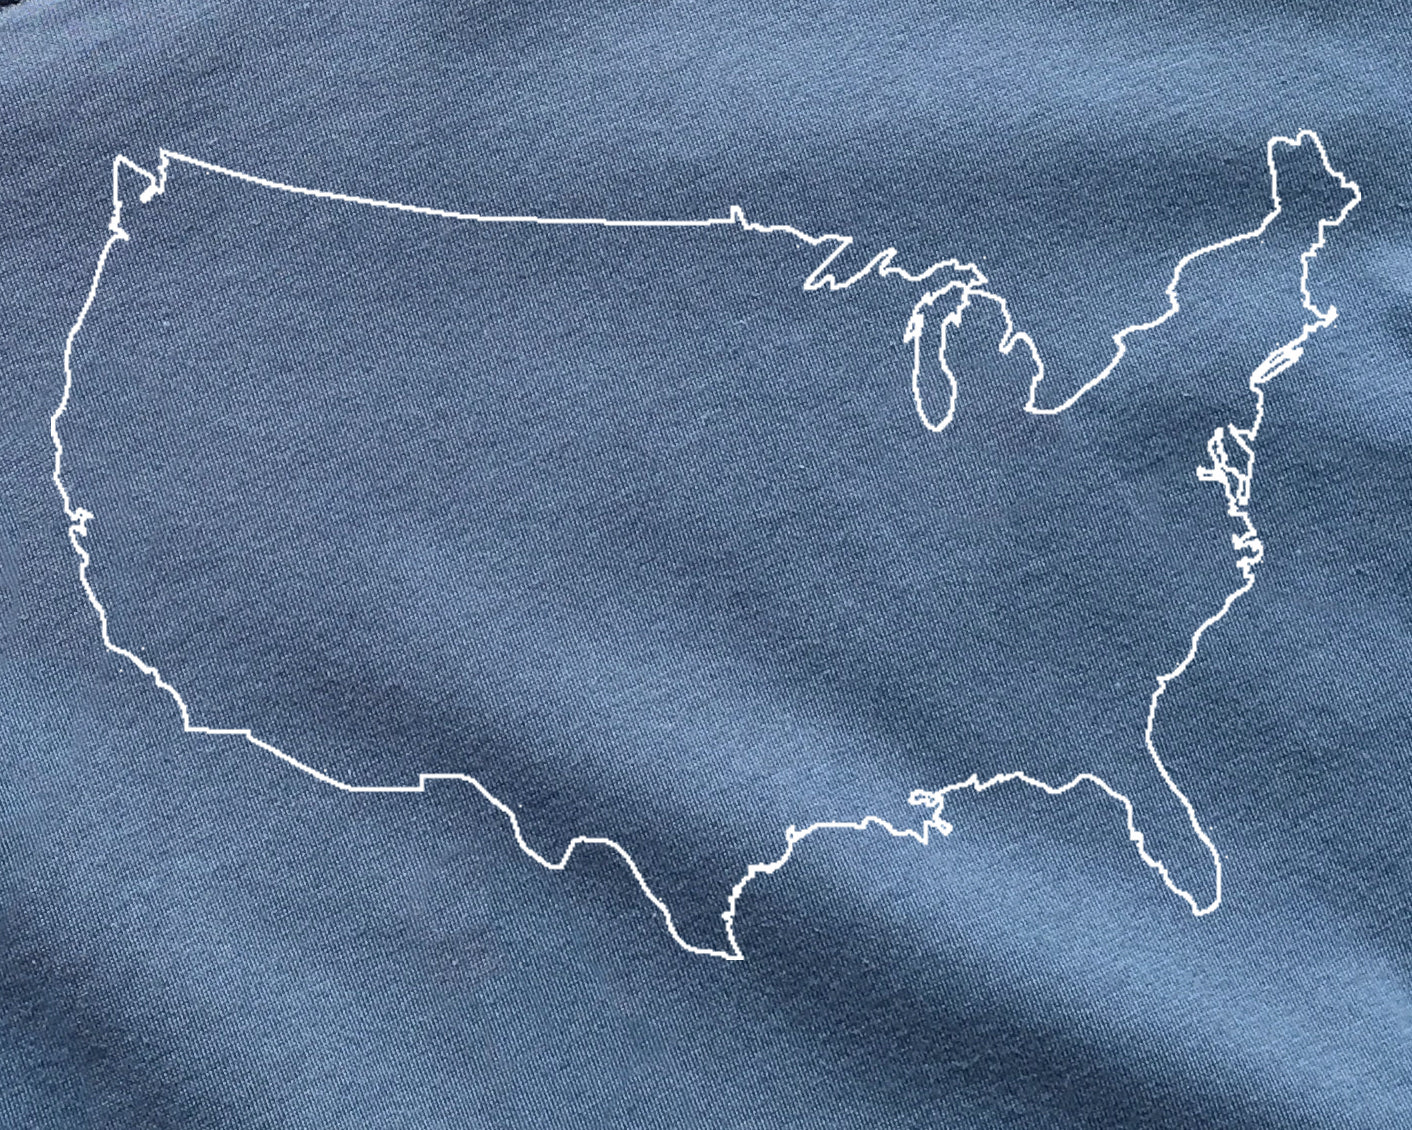 USA outline on Blue Premium Pima Cotton